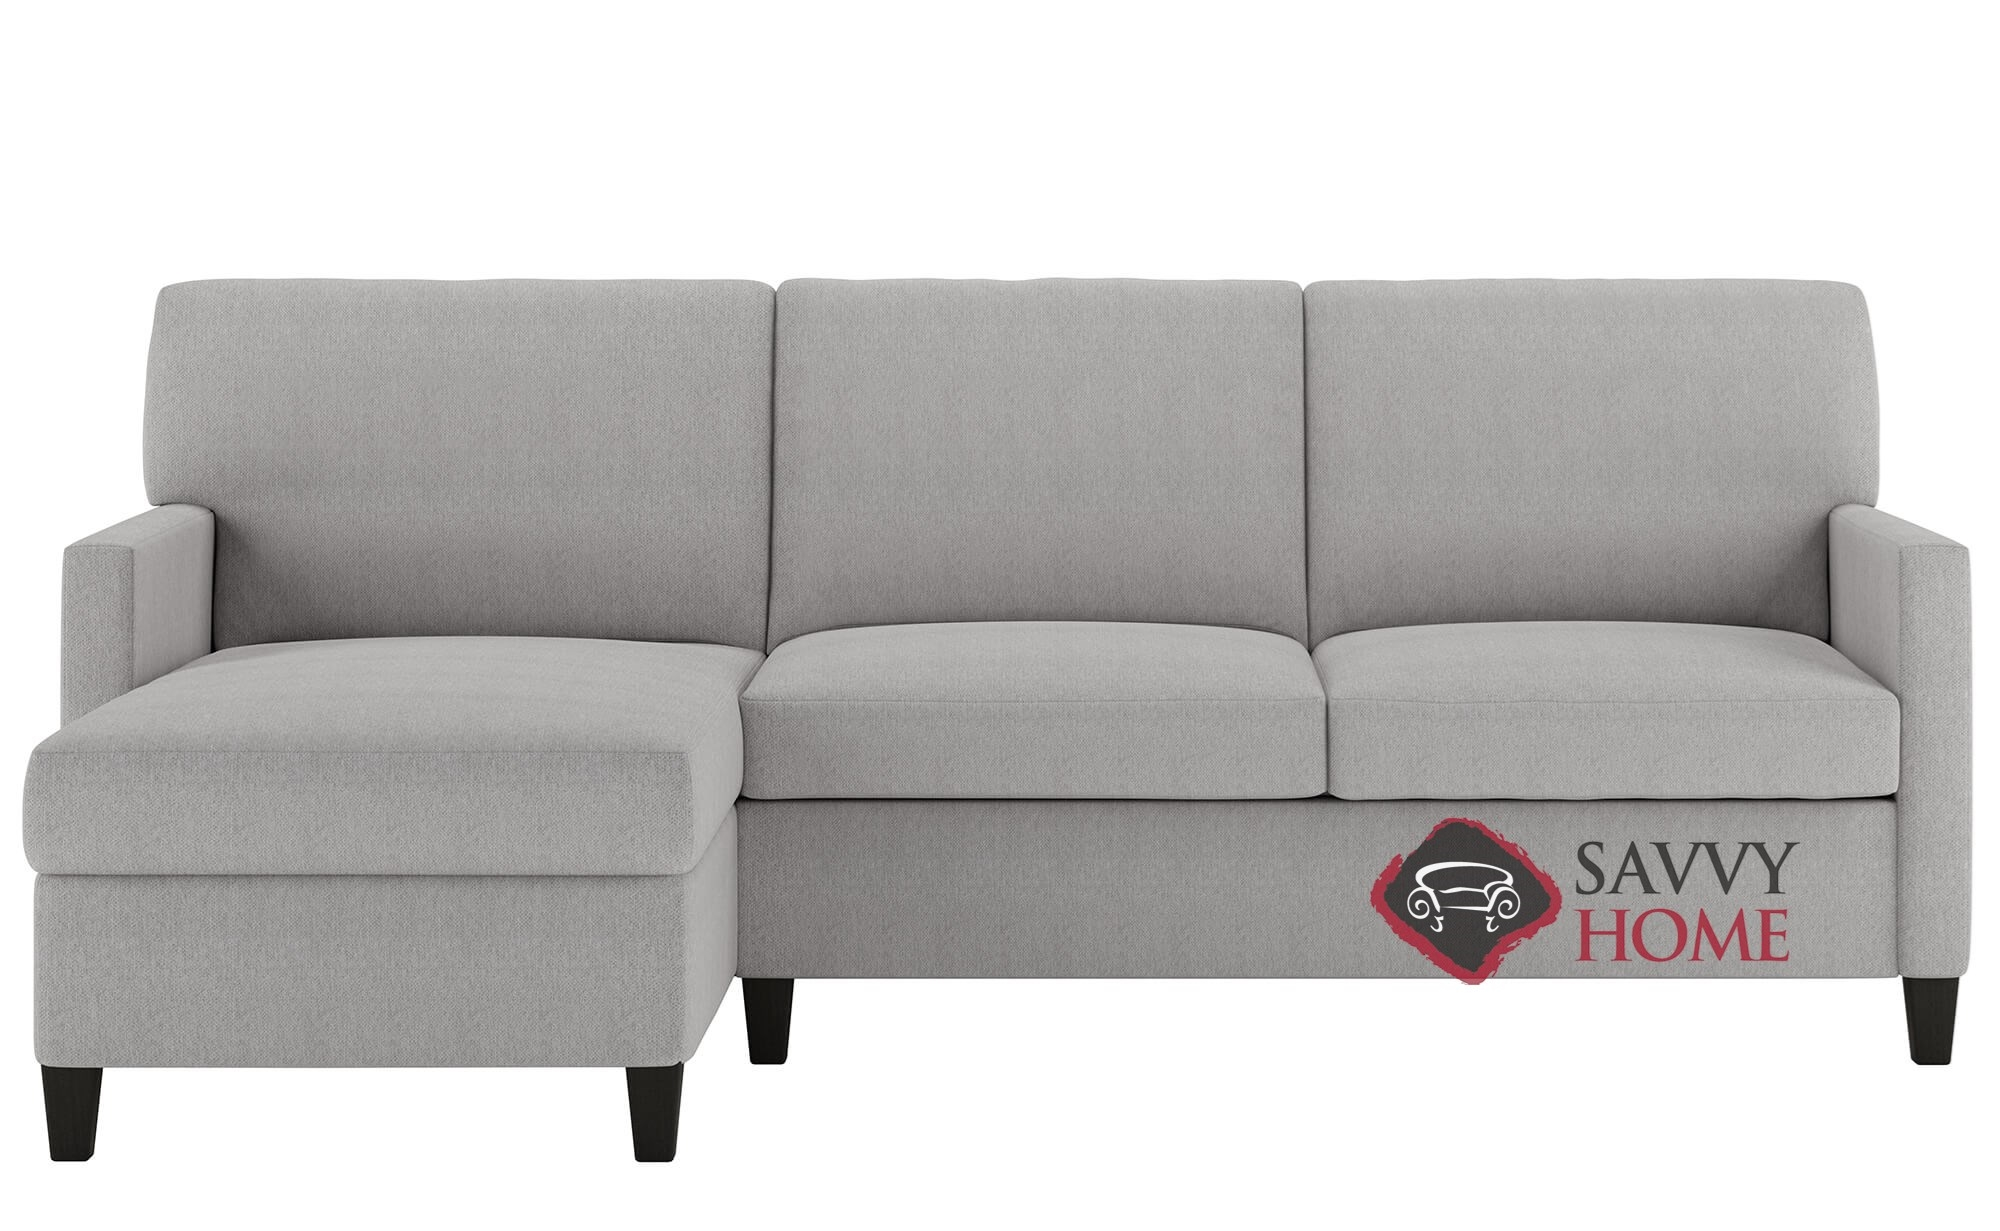 Conley Fabric Sleeper Sofas Queen By American Leather Is